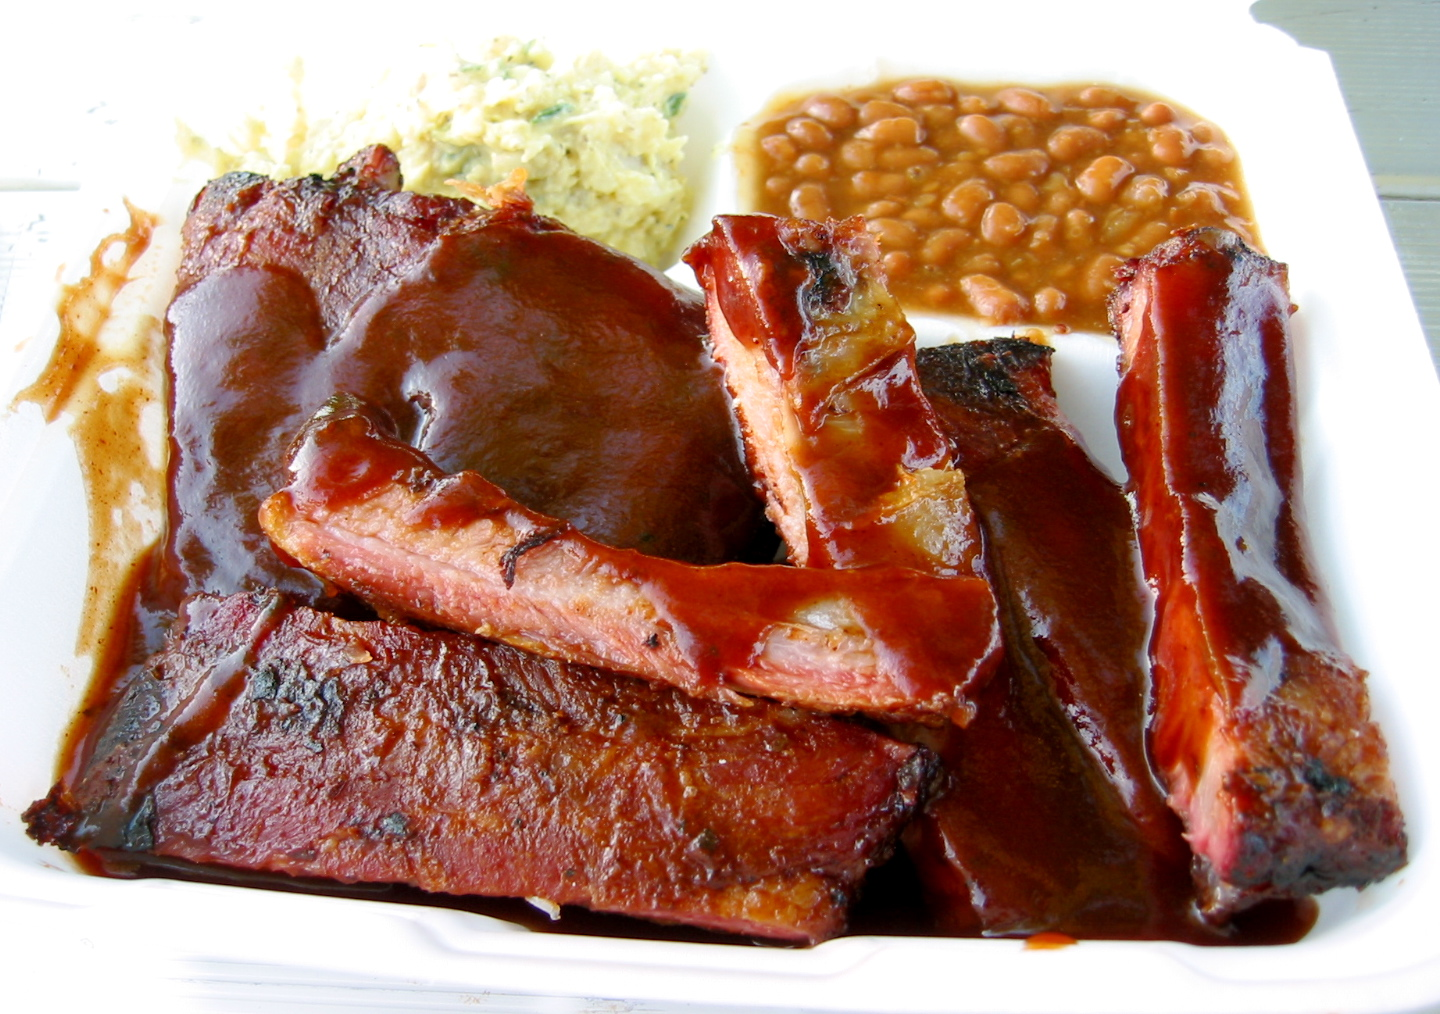 The food at Johnson's BBQ — based out of Norfolk, VA — was my favorite, with a sweet, slightly vinegary sauce.